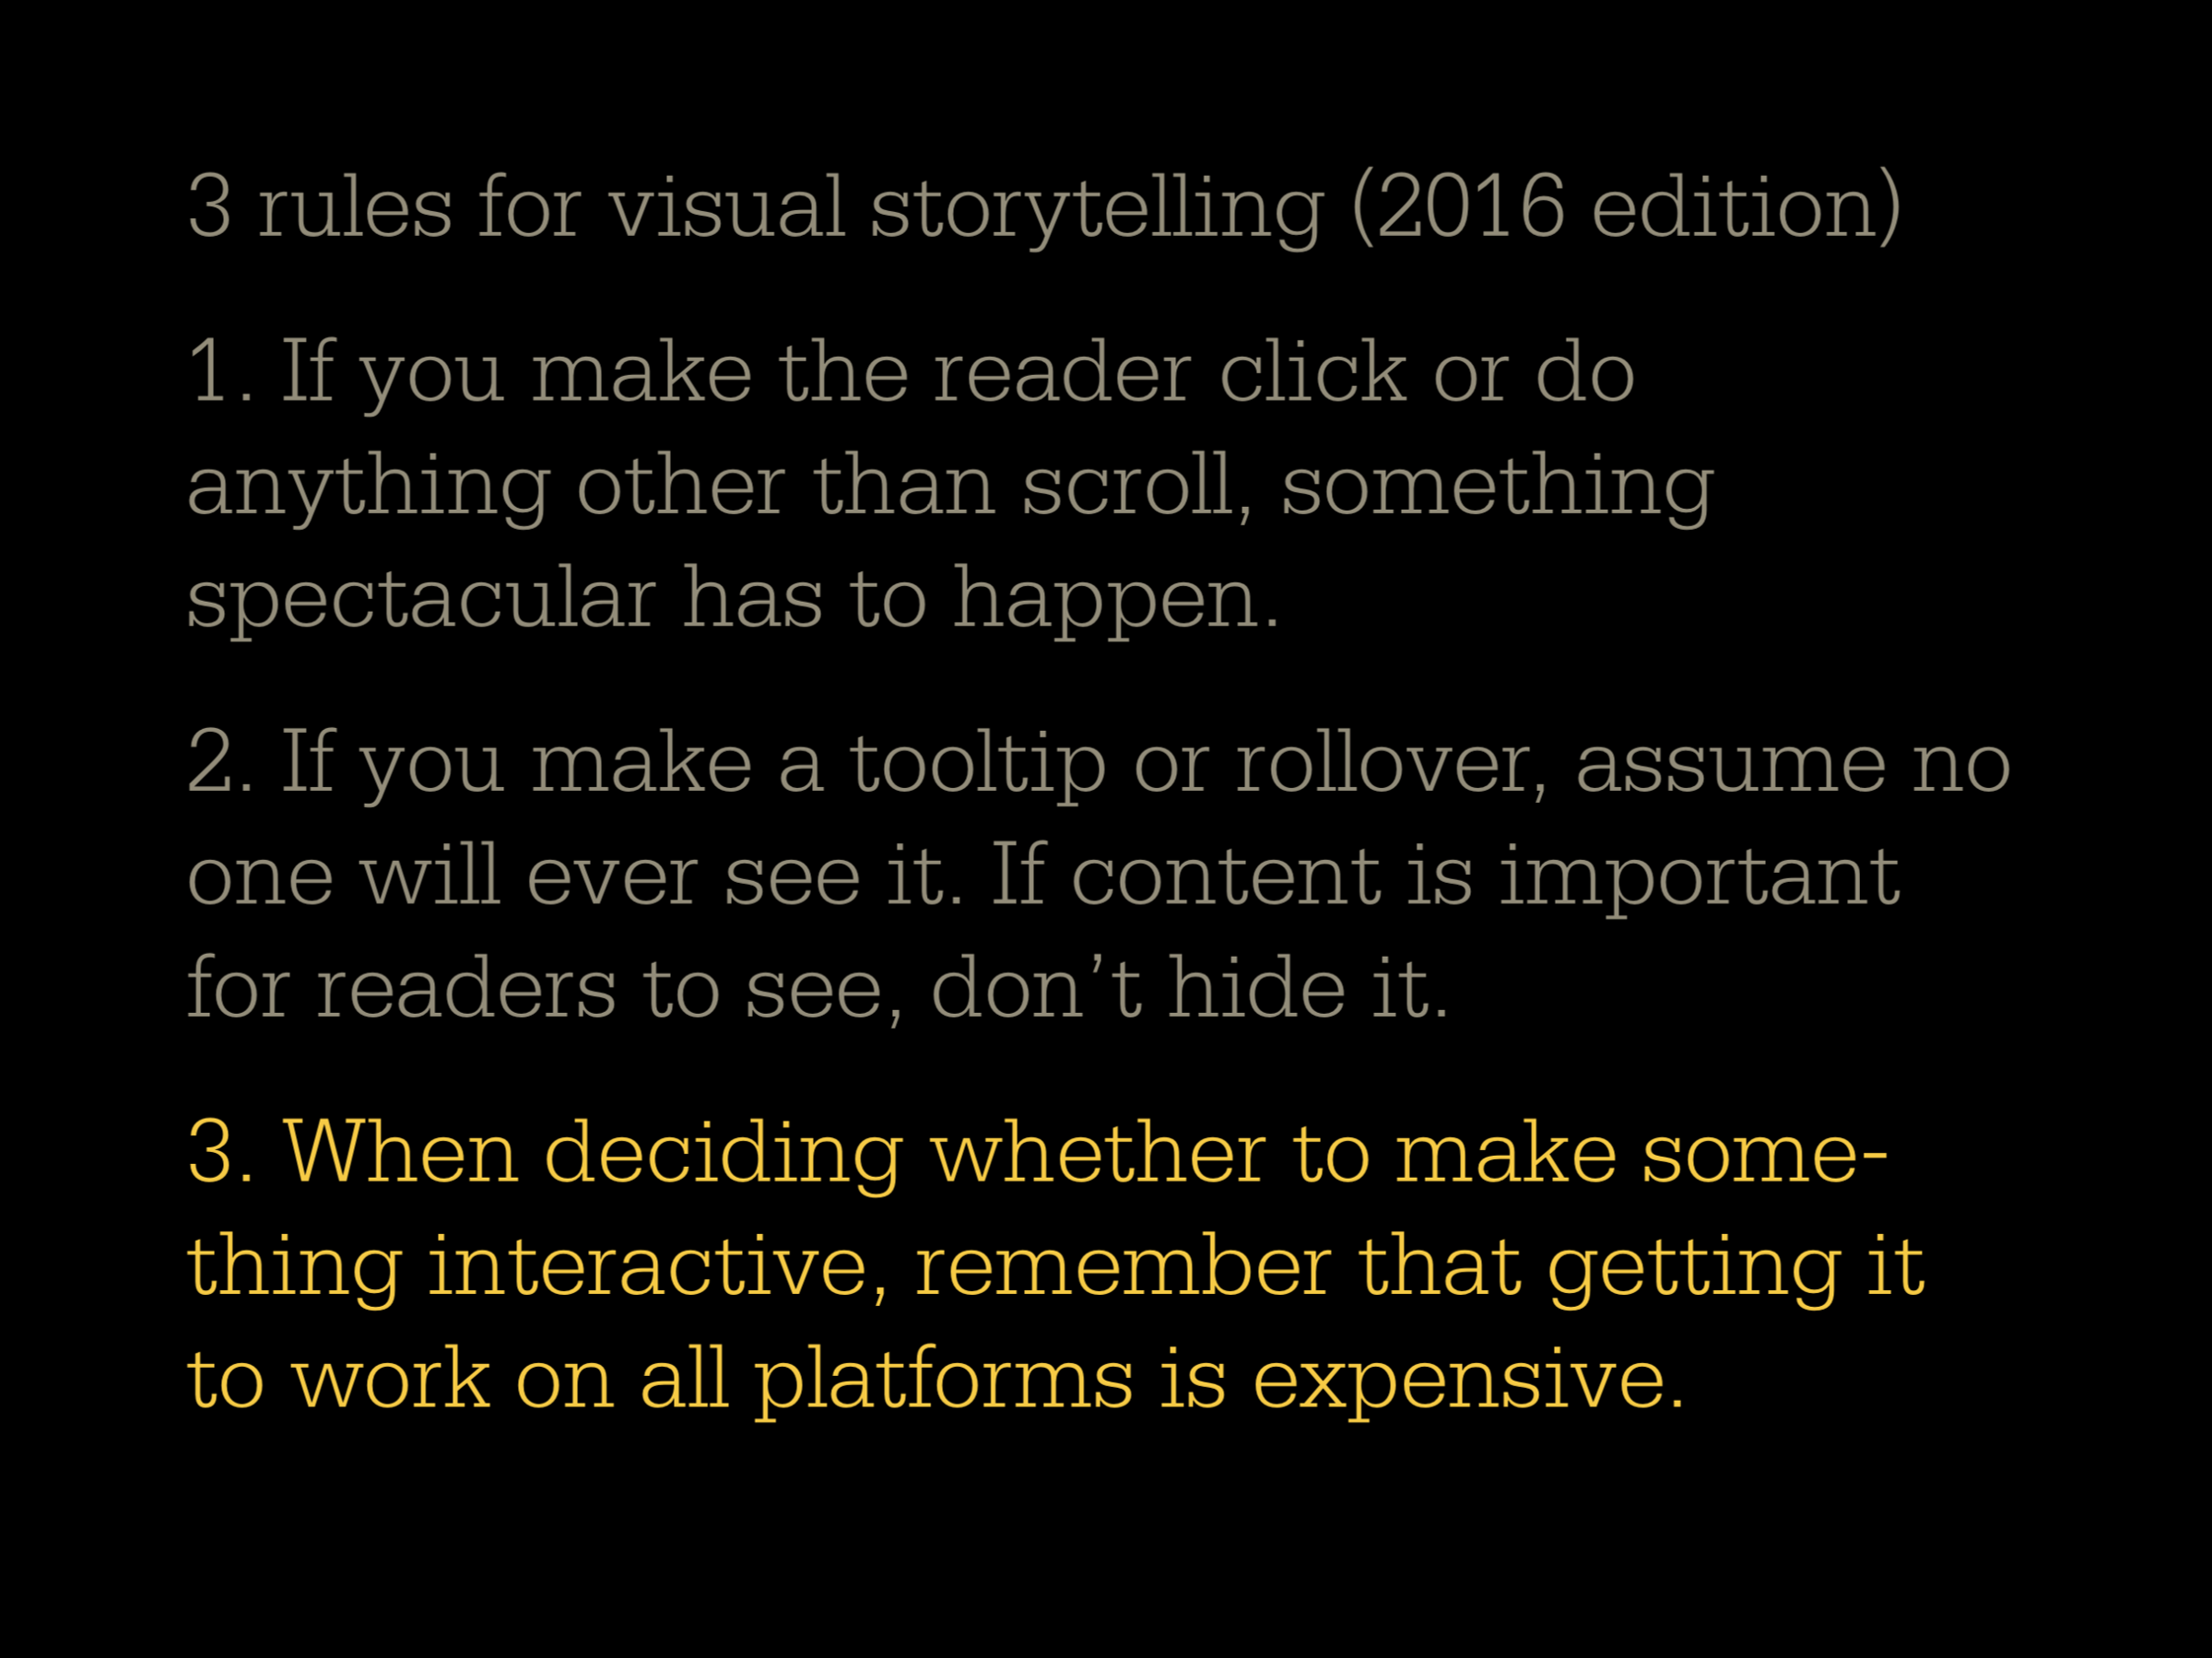 3 rules for visual storytelling 2016 edition: 1. If you make the reader click or do anything other than scroll, something spectacular has to happen. 2. If you make a tooltip or rollover, assume no one will ever see it. If content is important for readers to see, don't hide it. 3. When deciding whether to make something interactive, remember that getting it to work on all platforms is expensive.